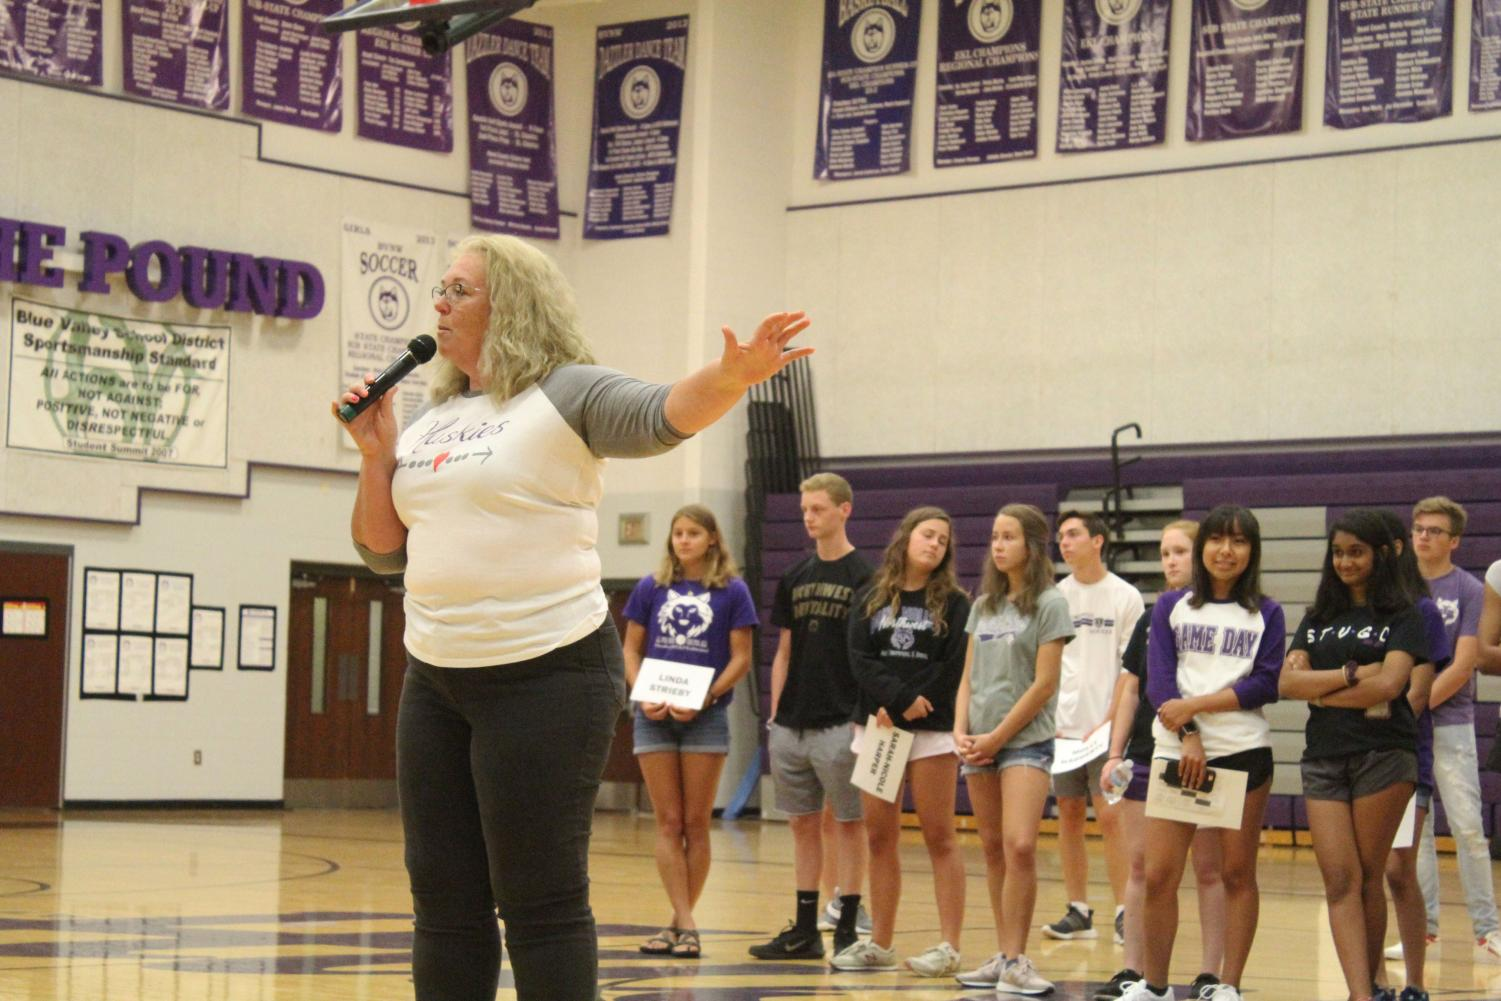 Principal+Amy+Pressly+speaks+to+the+freshman+class+during+freshman+orientation+on+Aug.+14.+